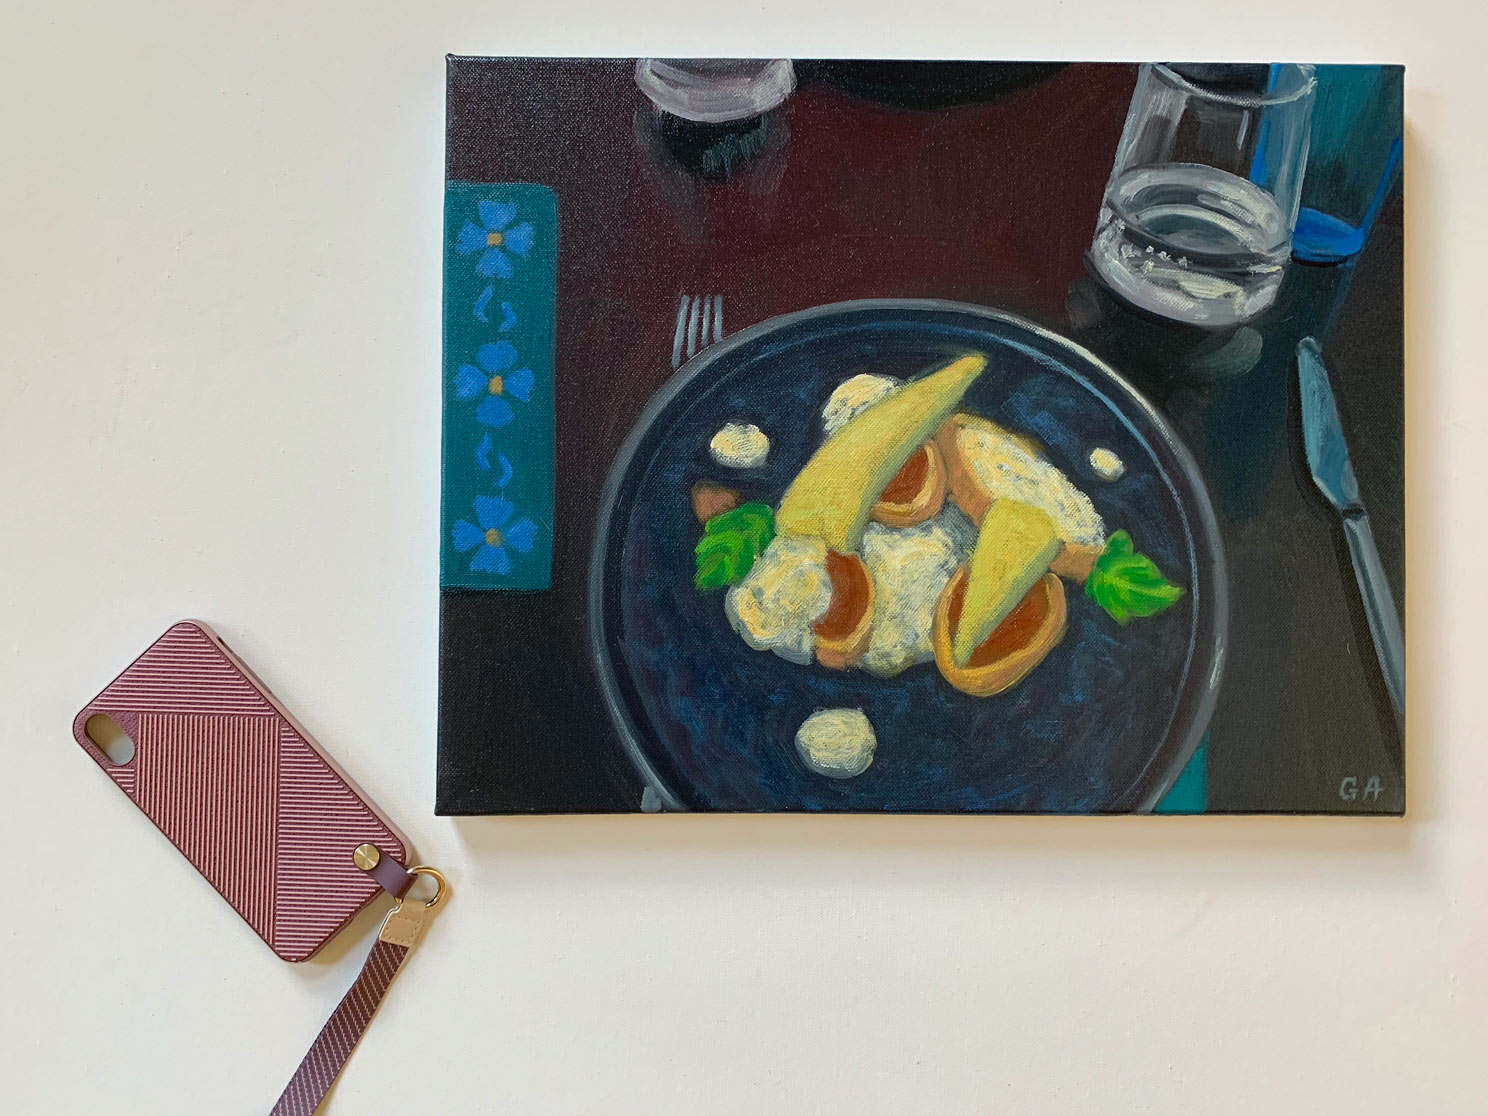 IPhone-XS-Max-Moshi-Altra-Case-Strap-Giselle-Ayupova-Painting-Lunch-Saint-Remy.jpg